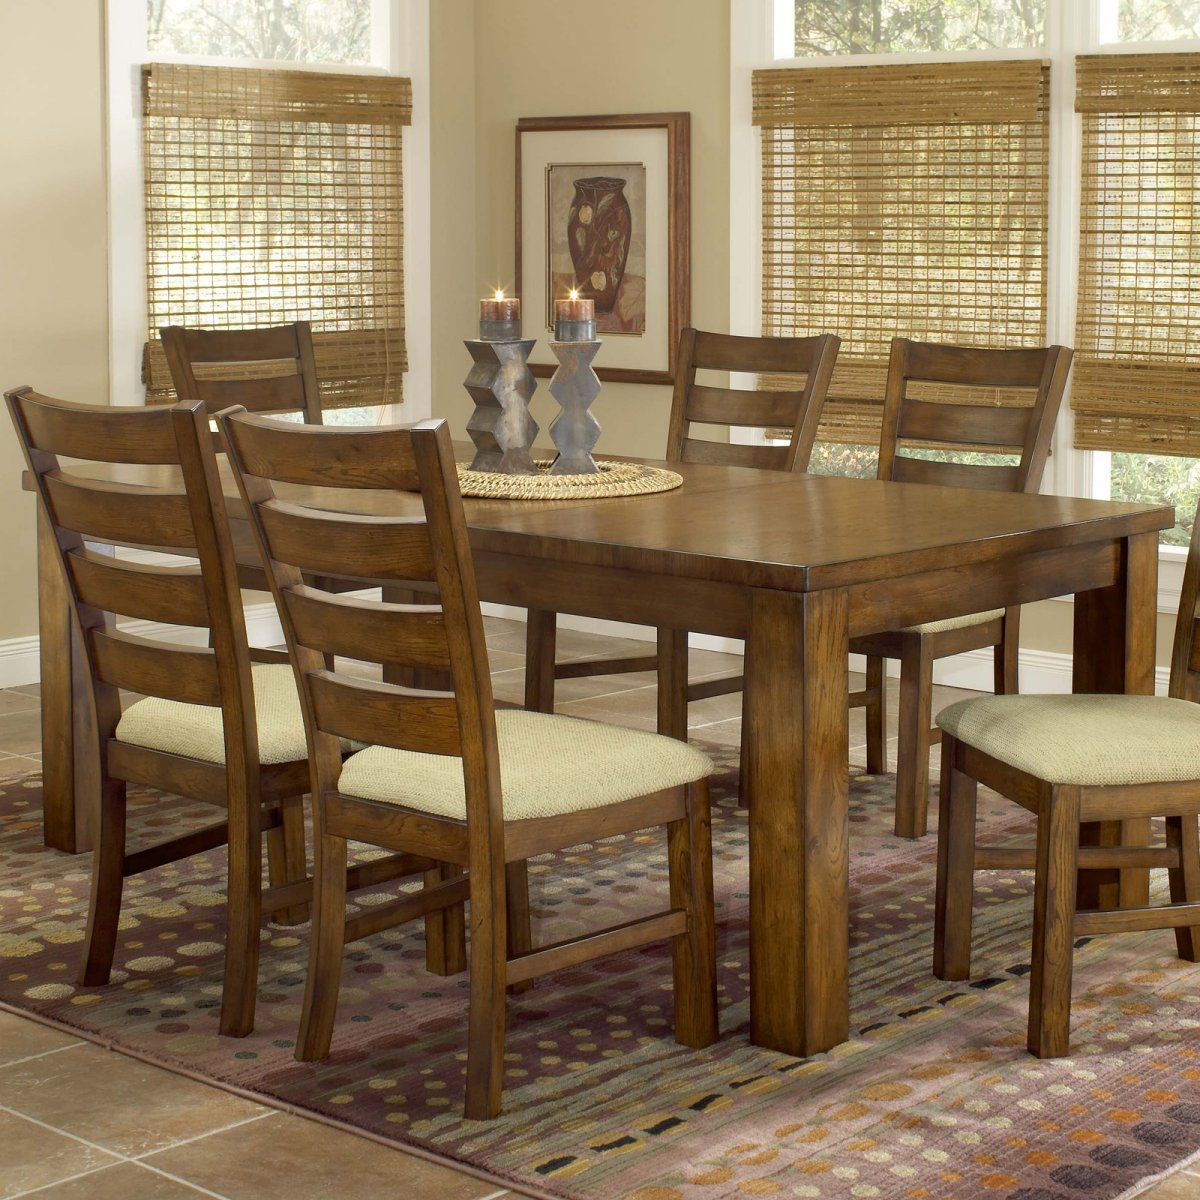 Real wood dining table review homesfeed for Large dark wood dining table